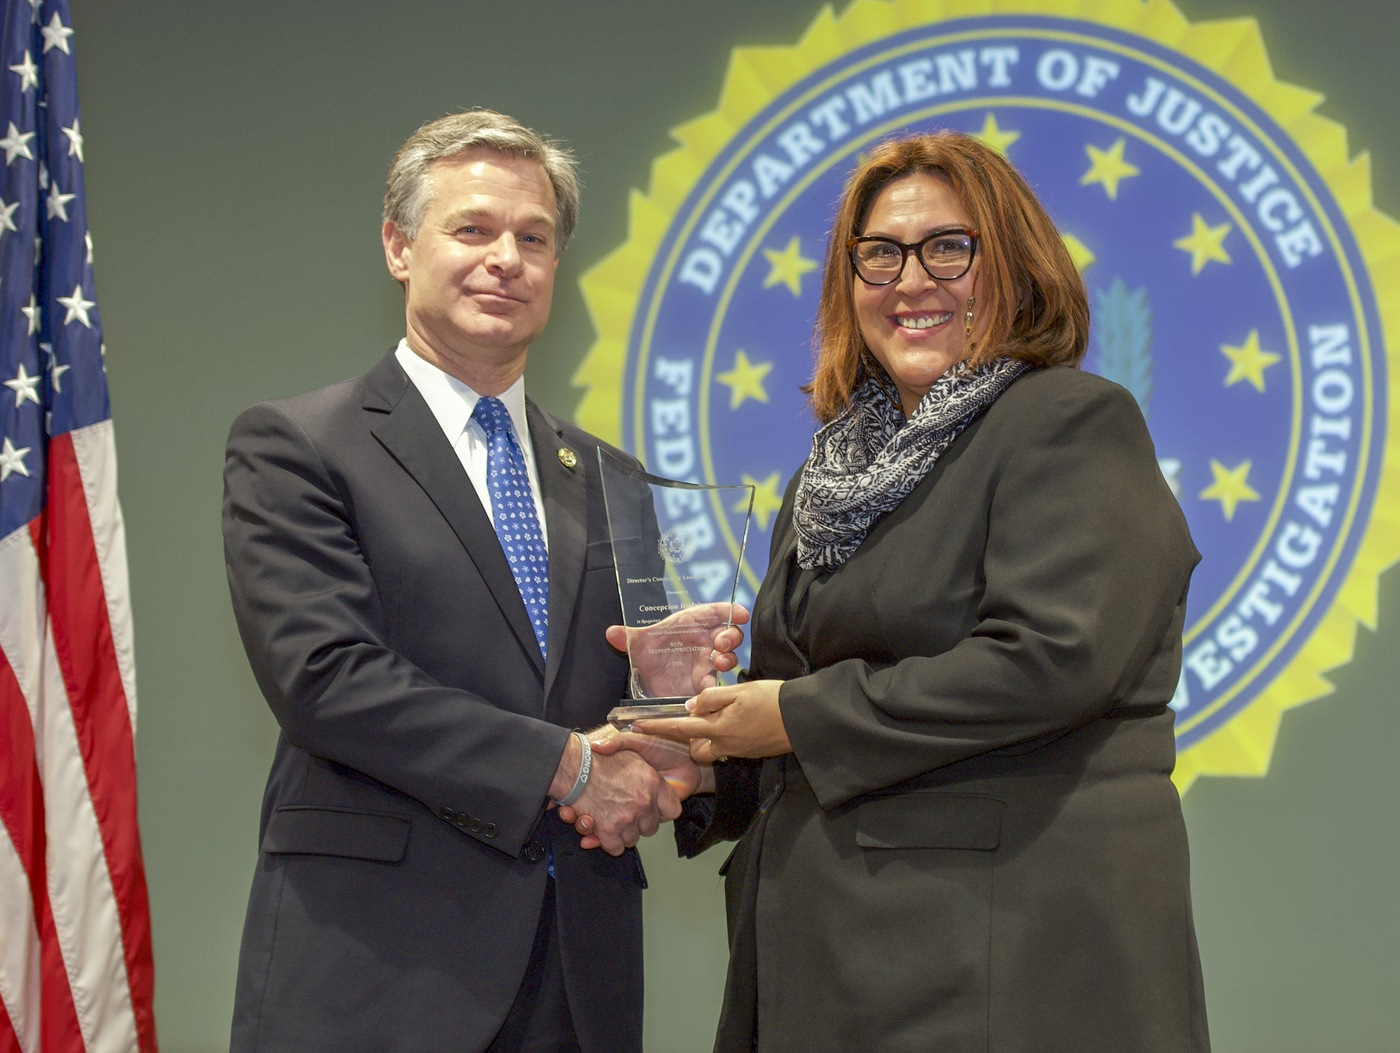 FBI Director Christopher Wray presents Chicago Division recipient Concepcion Rodriguez with the Director's Community Leadership Award (DCLA) at a ceremony at FBI Headquarters on May 3, 2019.